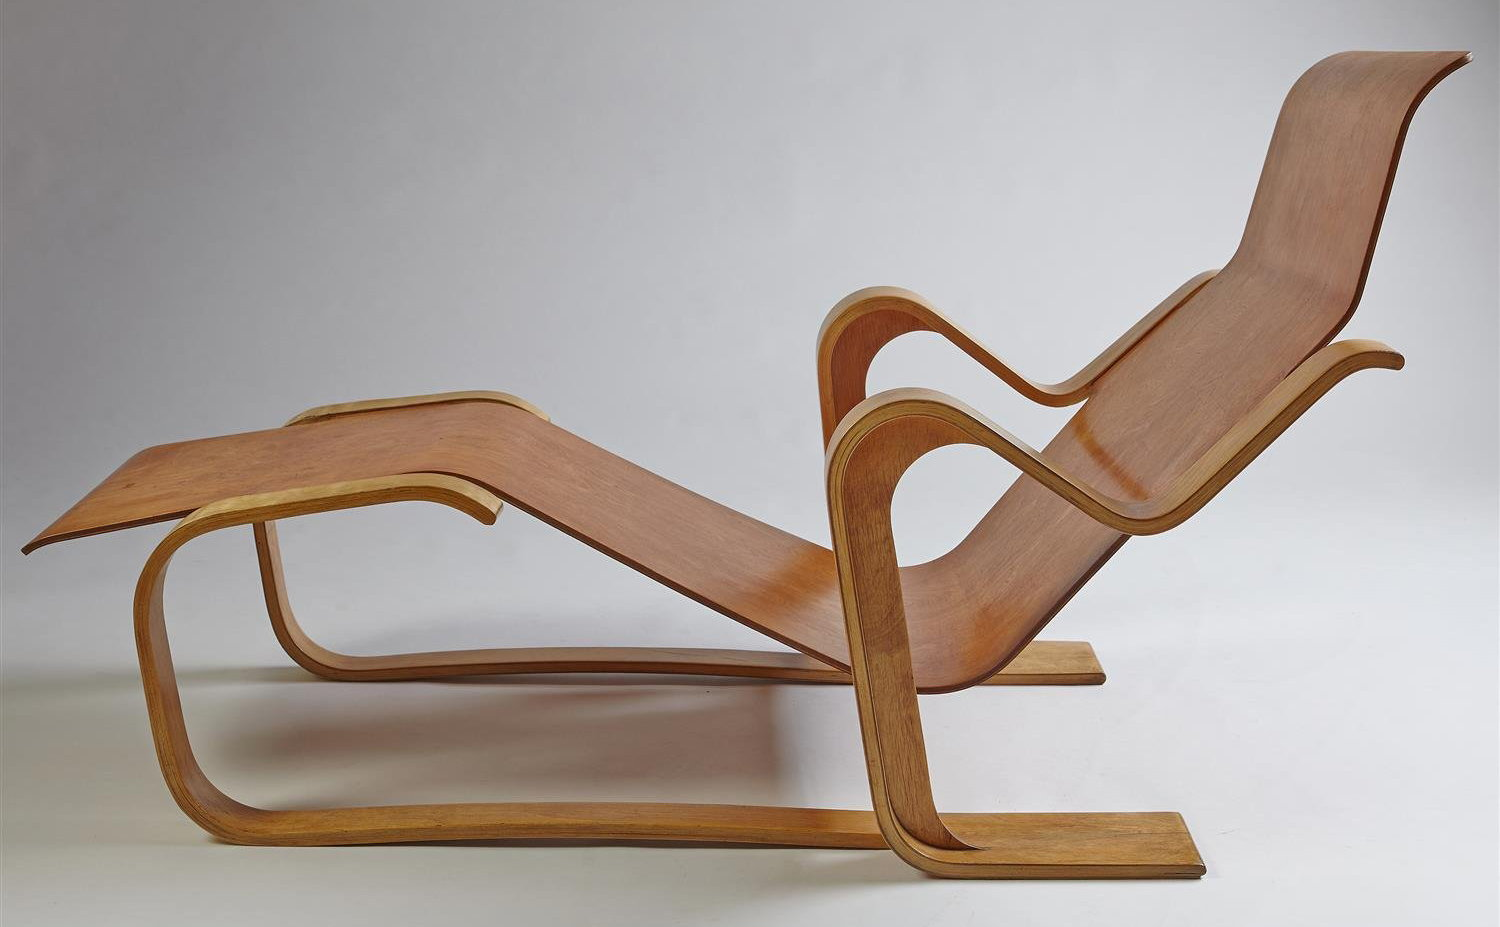 Breuer 1936 Long Chair for Isokon